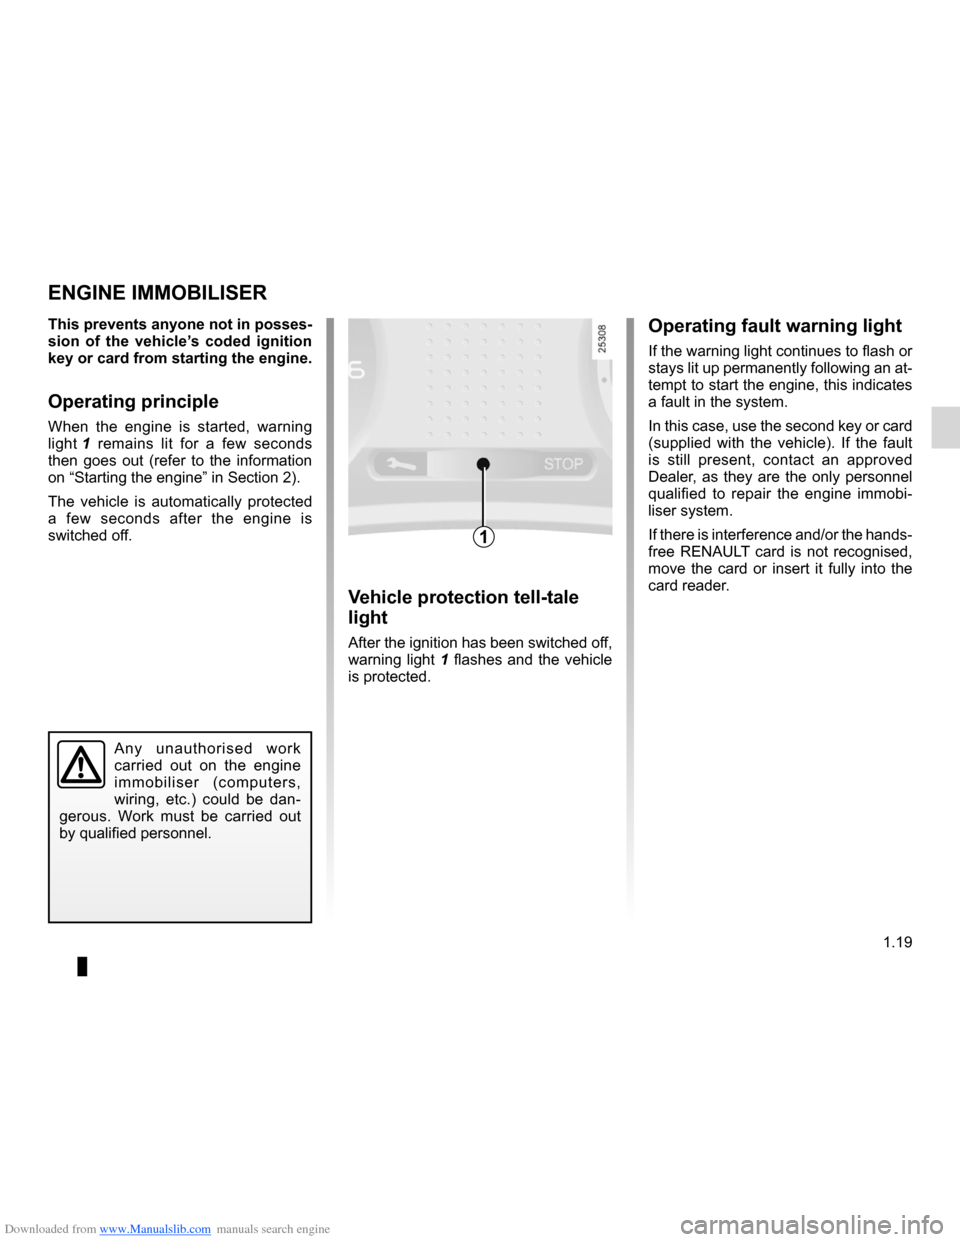 RENAULT CLIO 2012 X85 / 3.G Owners Manual, Page 25